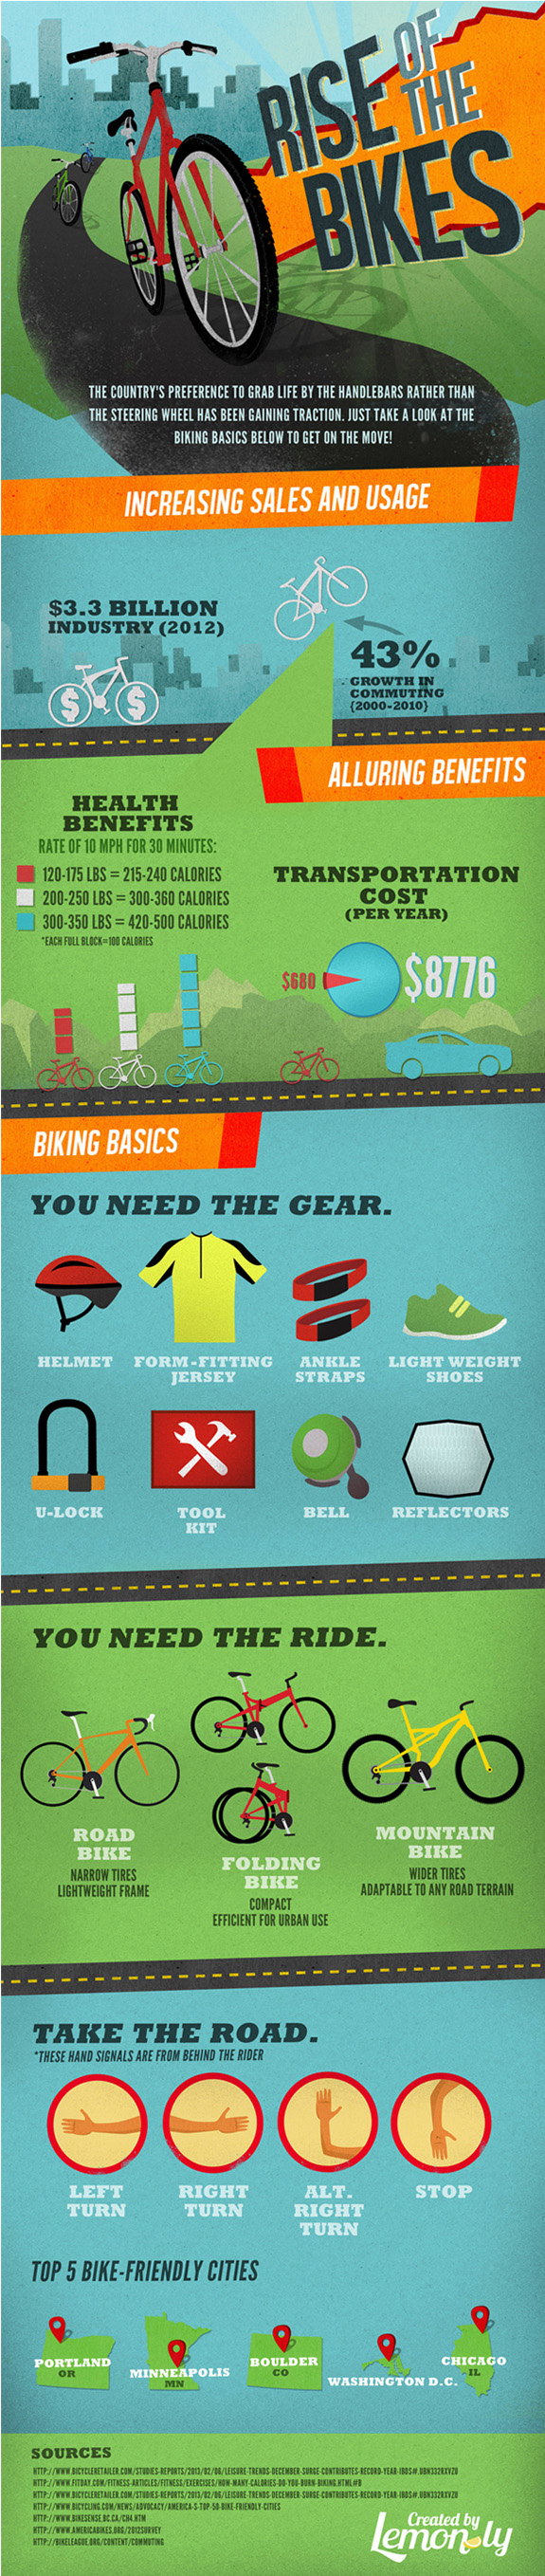 Bike Riding Facts